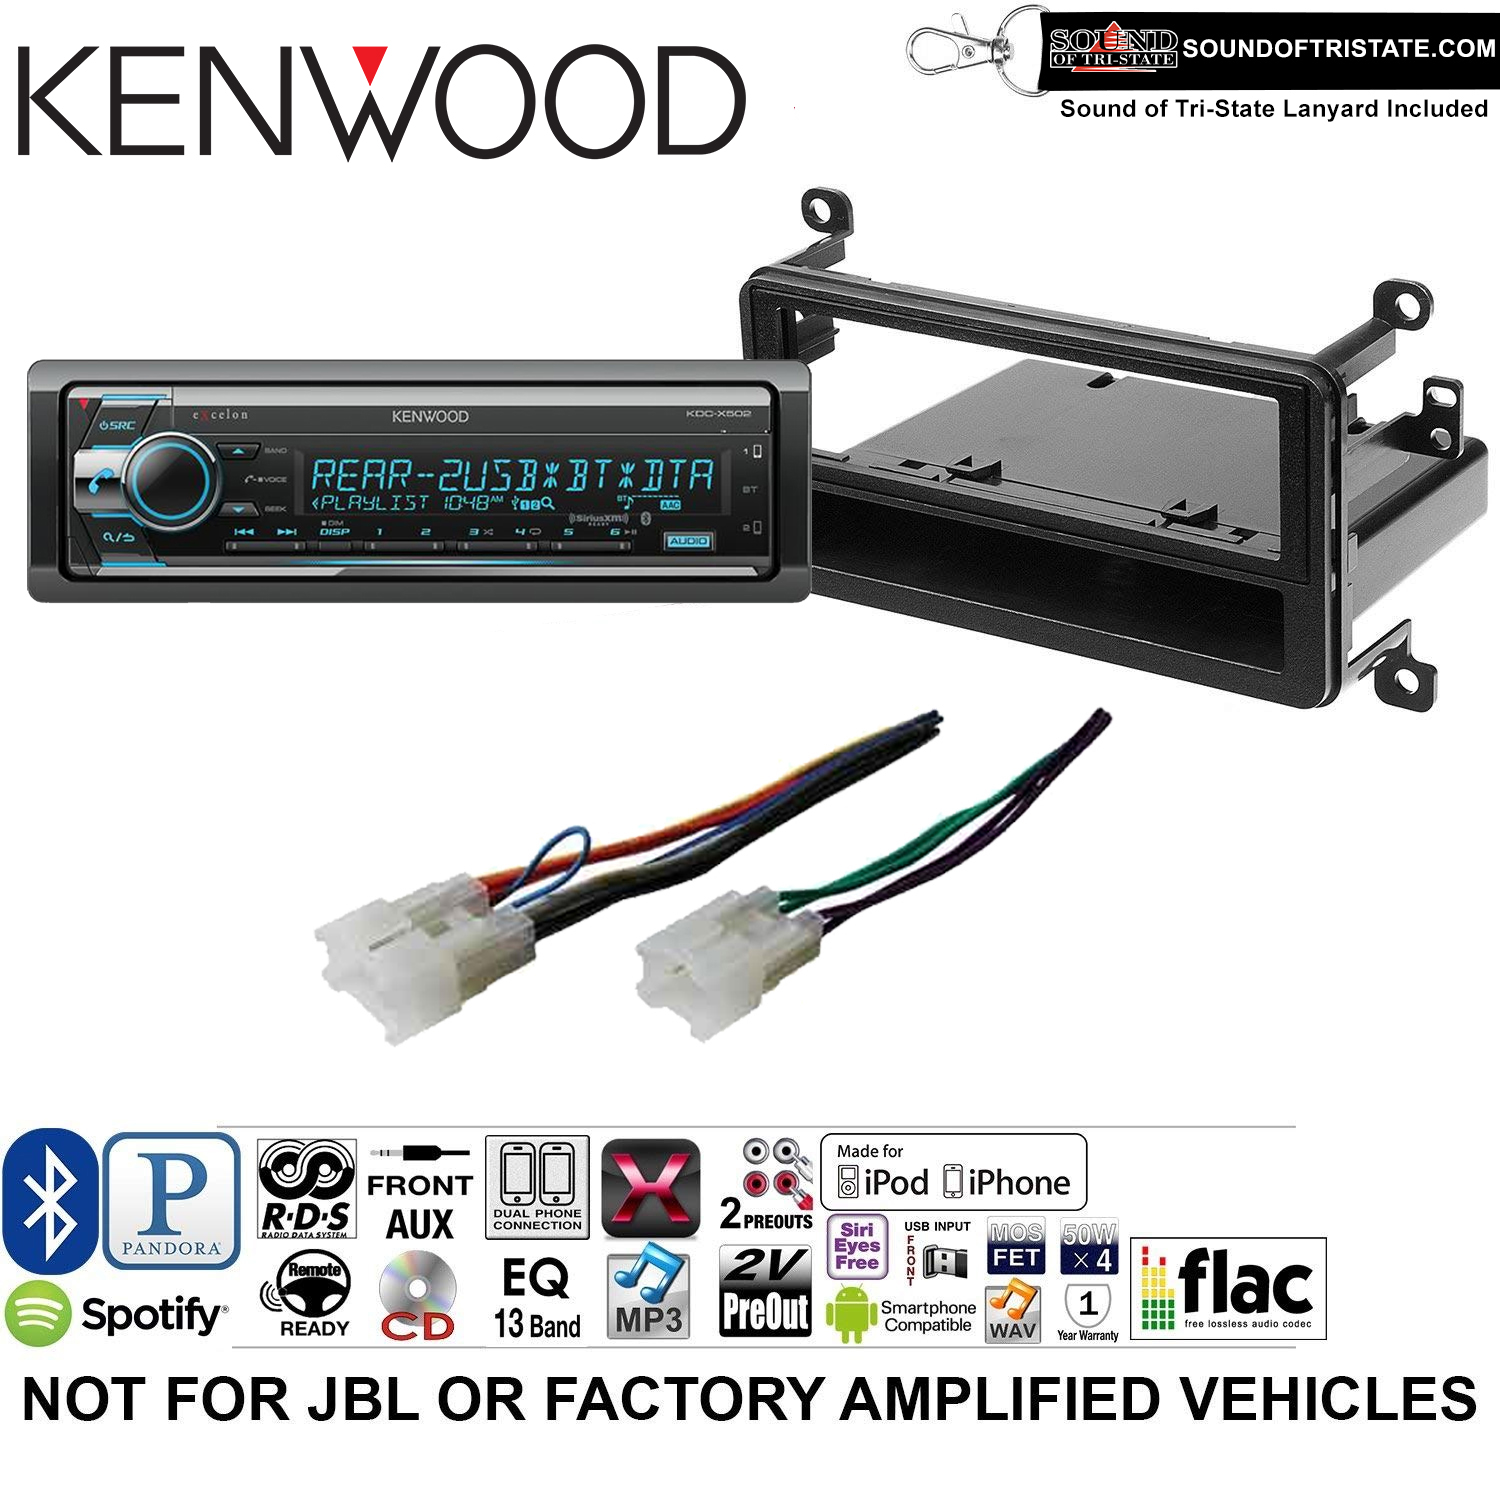 Kenwood KDCX502 Double Din Radio Install Kit with Bluetooth, CD Player, USB/AUX Fits 2001-2005 Toyota RAV4 and a SOTS lanyard included